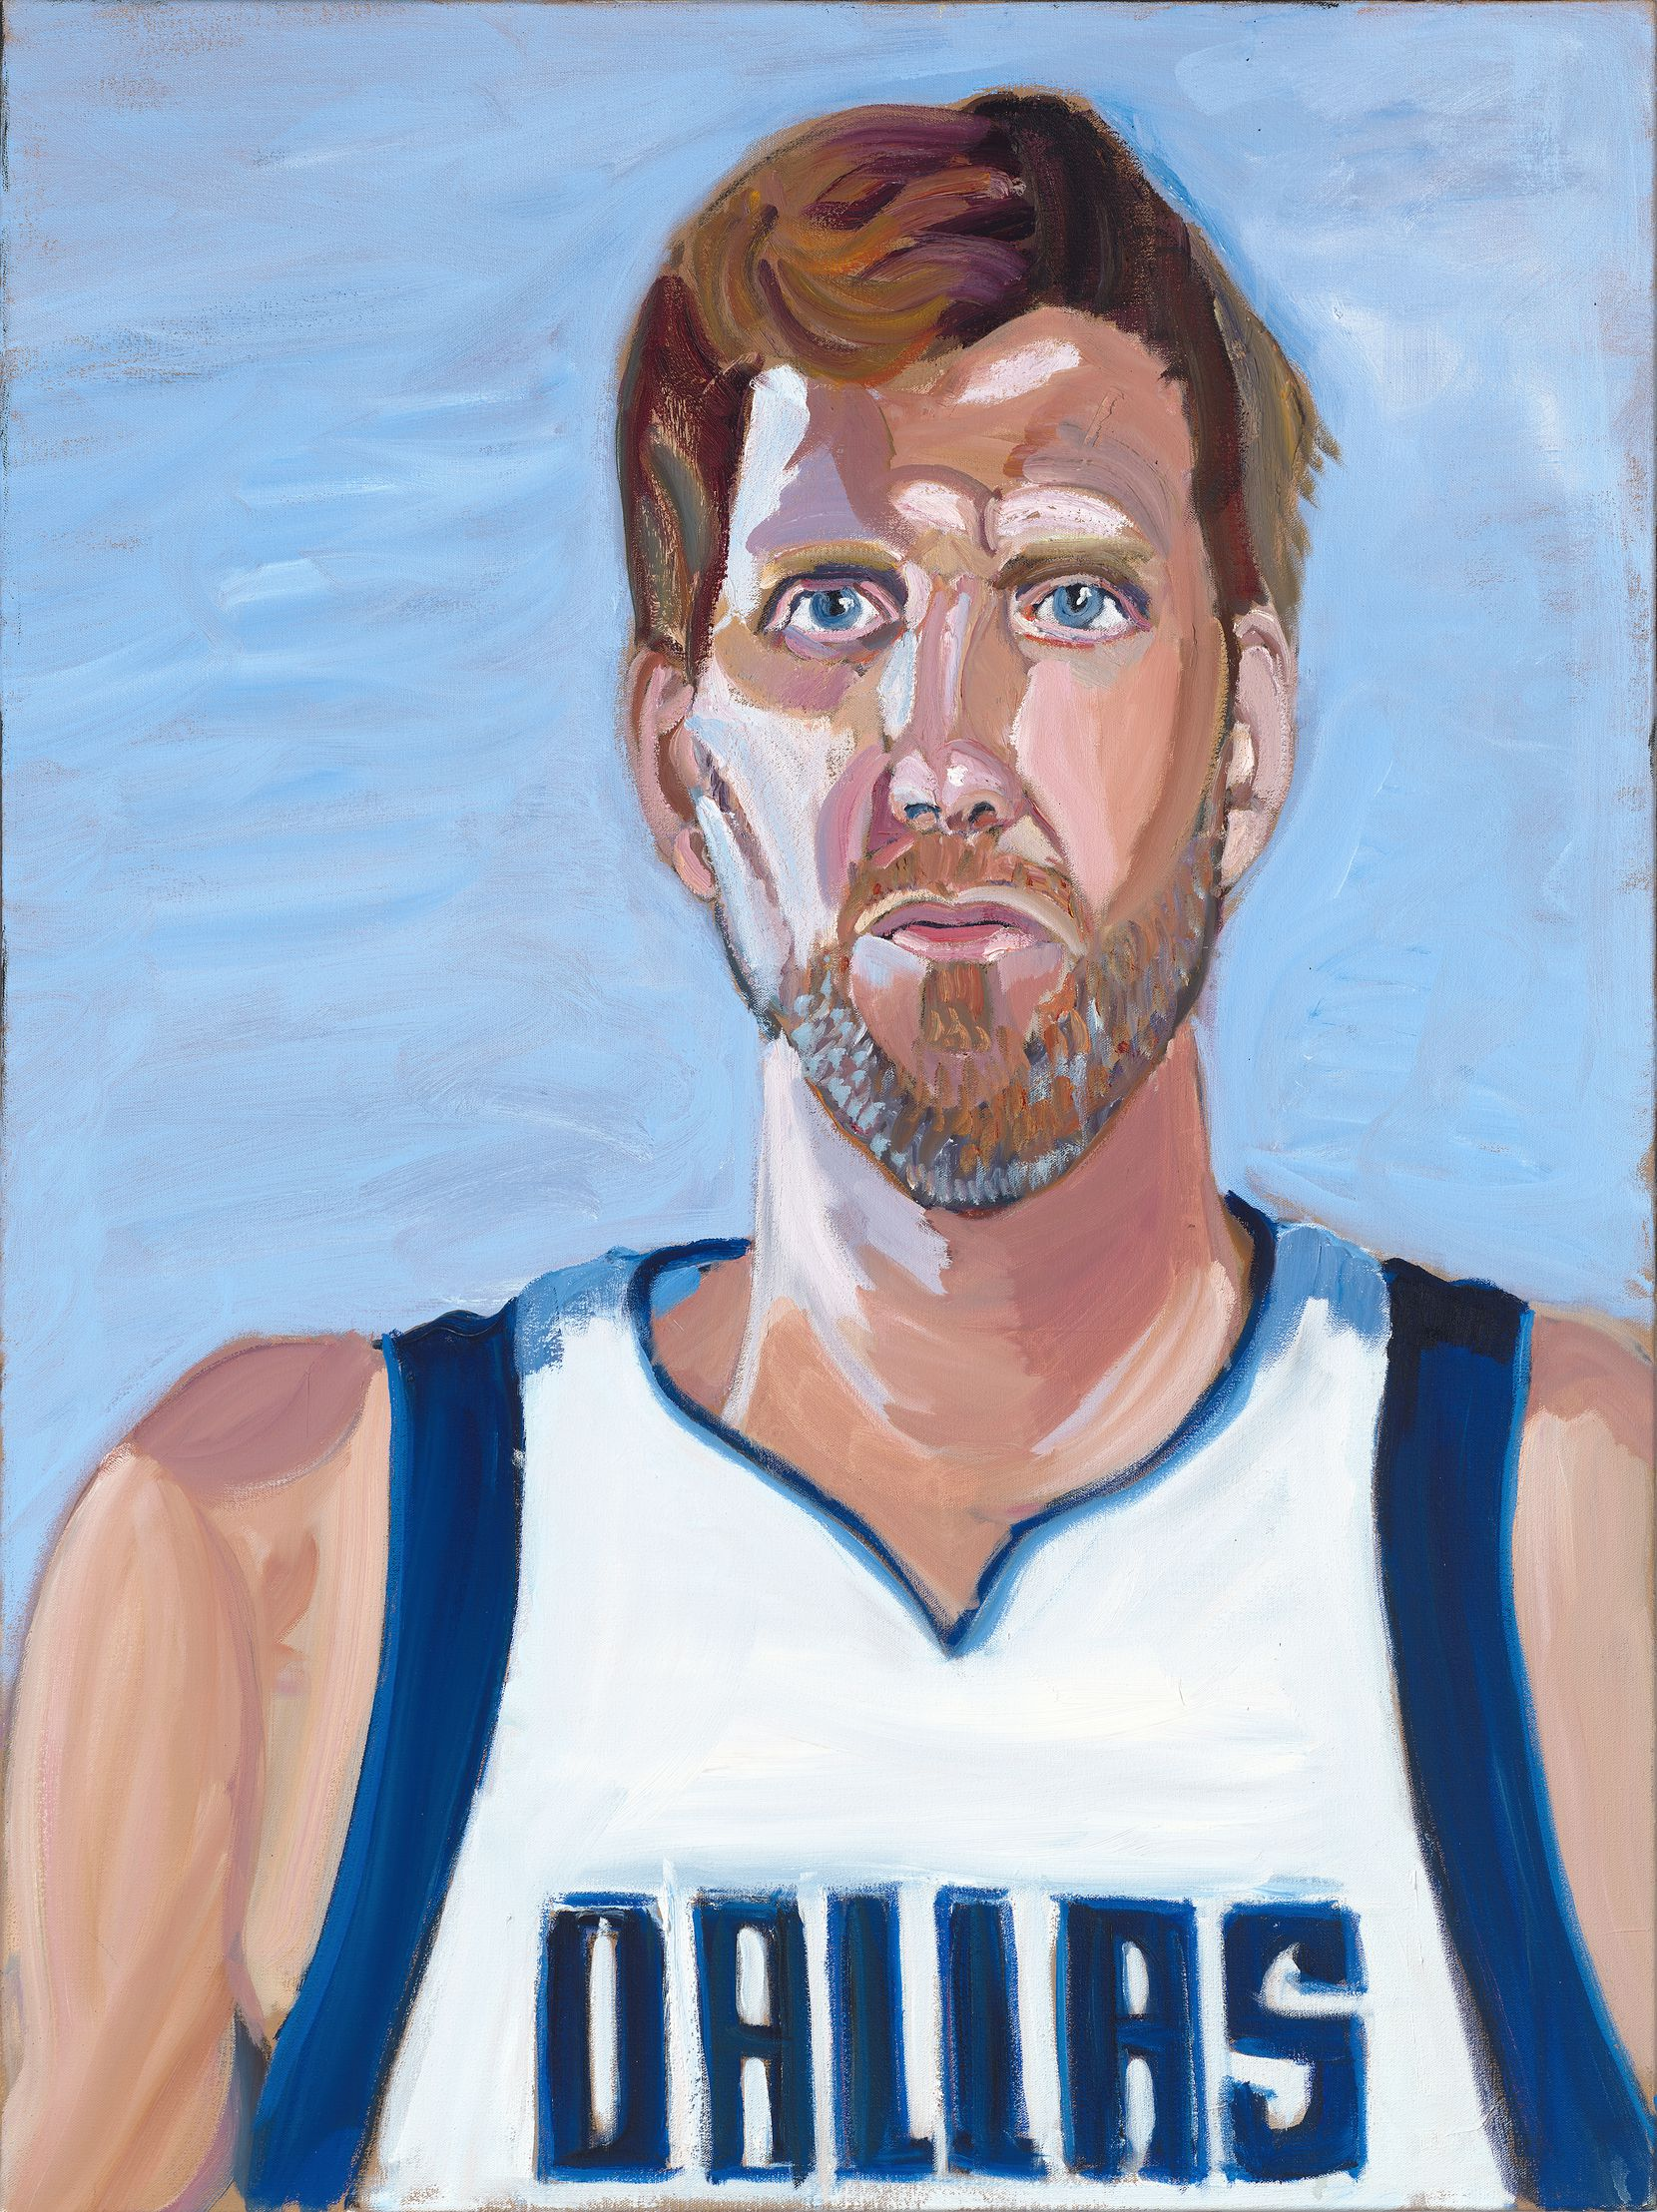 George W. Bush's portrait of former Mavericks star Dirk Nowitzki is featured in the former president's book titled Out of Many, One: Portraits of America's Immigrants.